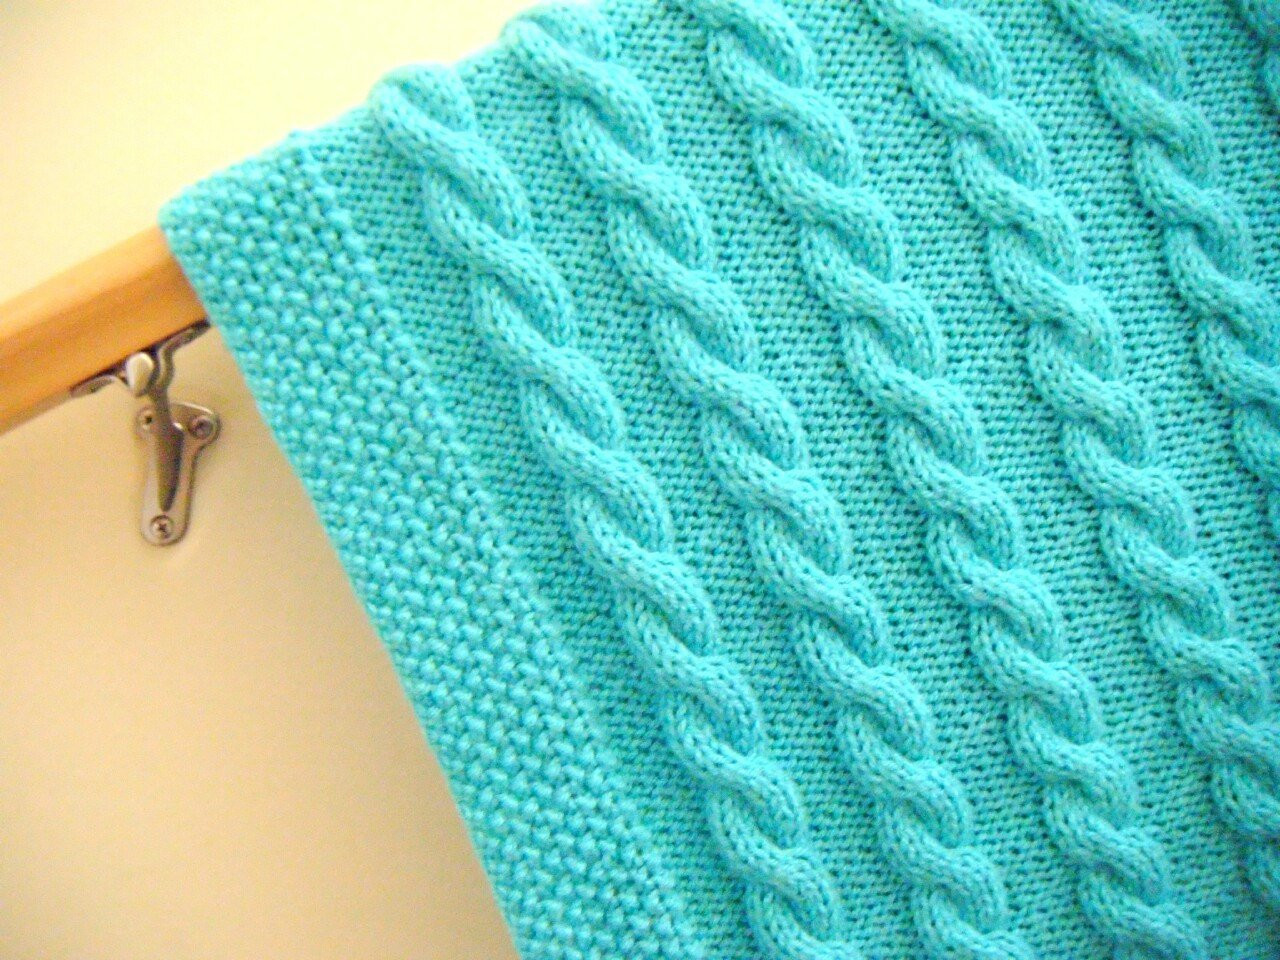 Baby blanket knitted cable pattern very soft turquoise